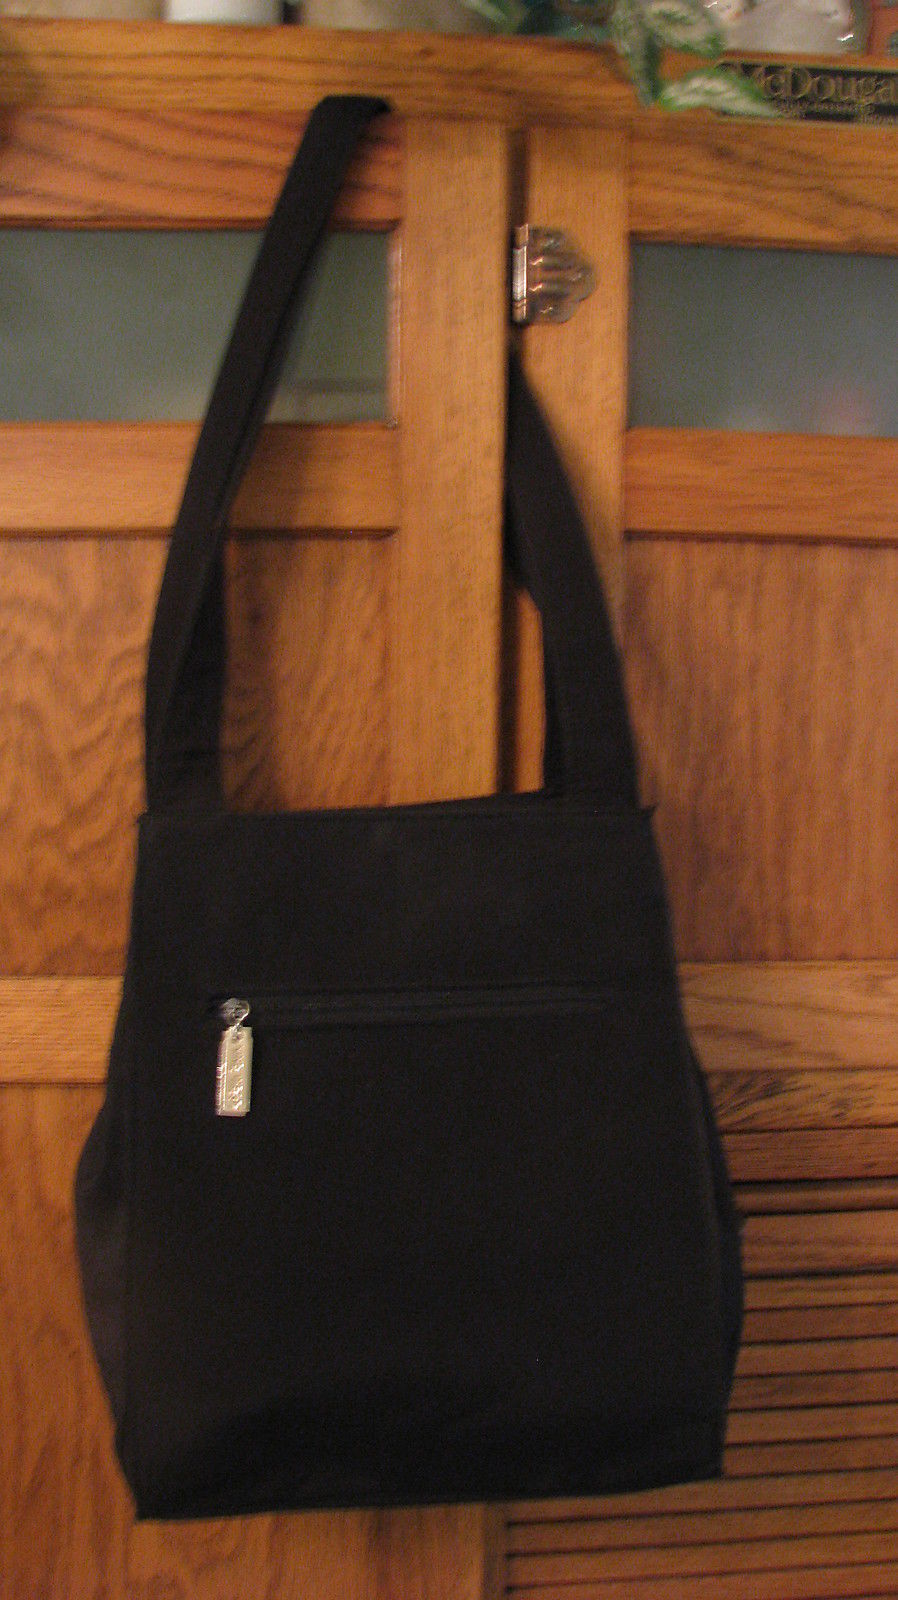 Primary image for Nine West Shoulder Bag PURSE Black Handbag Satchel NICE